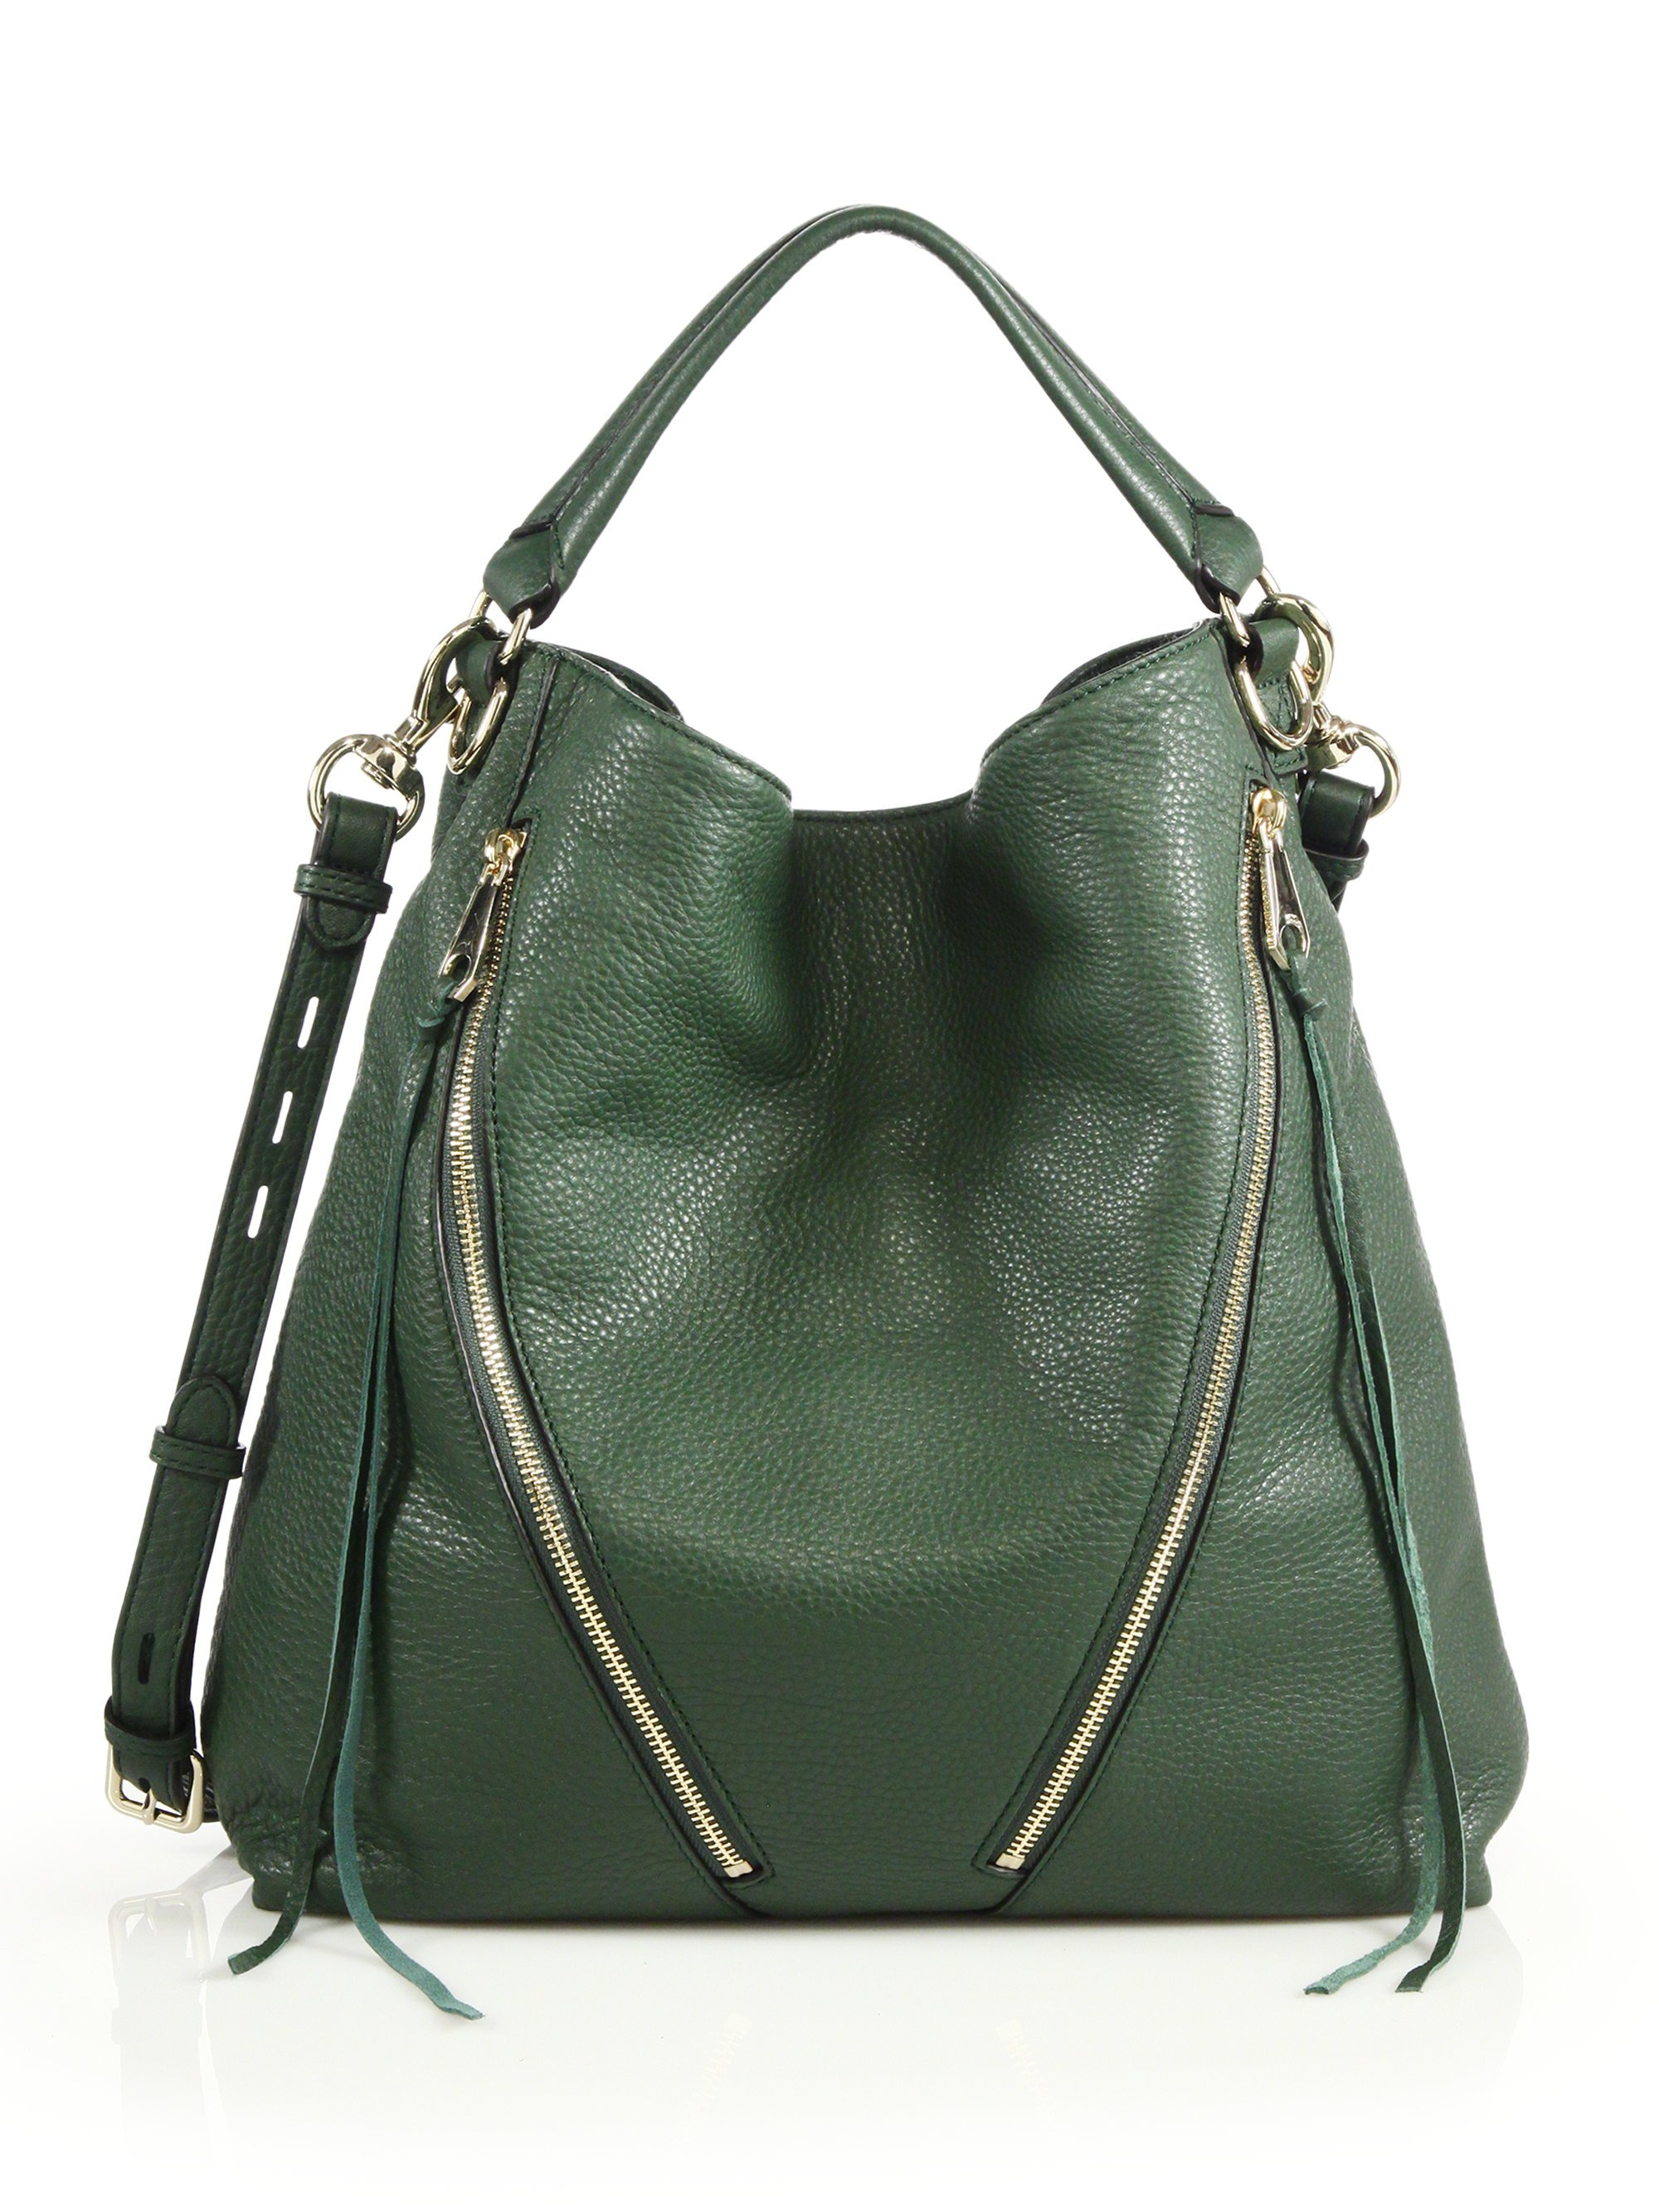 Lyst - Rebecca Minkoff Moto Leather Hobo Bag in Green ac2e01e02ba4